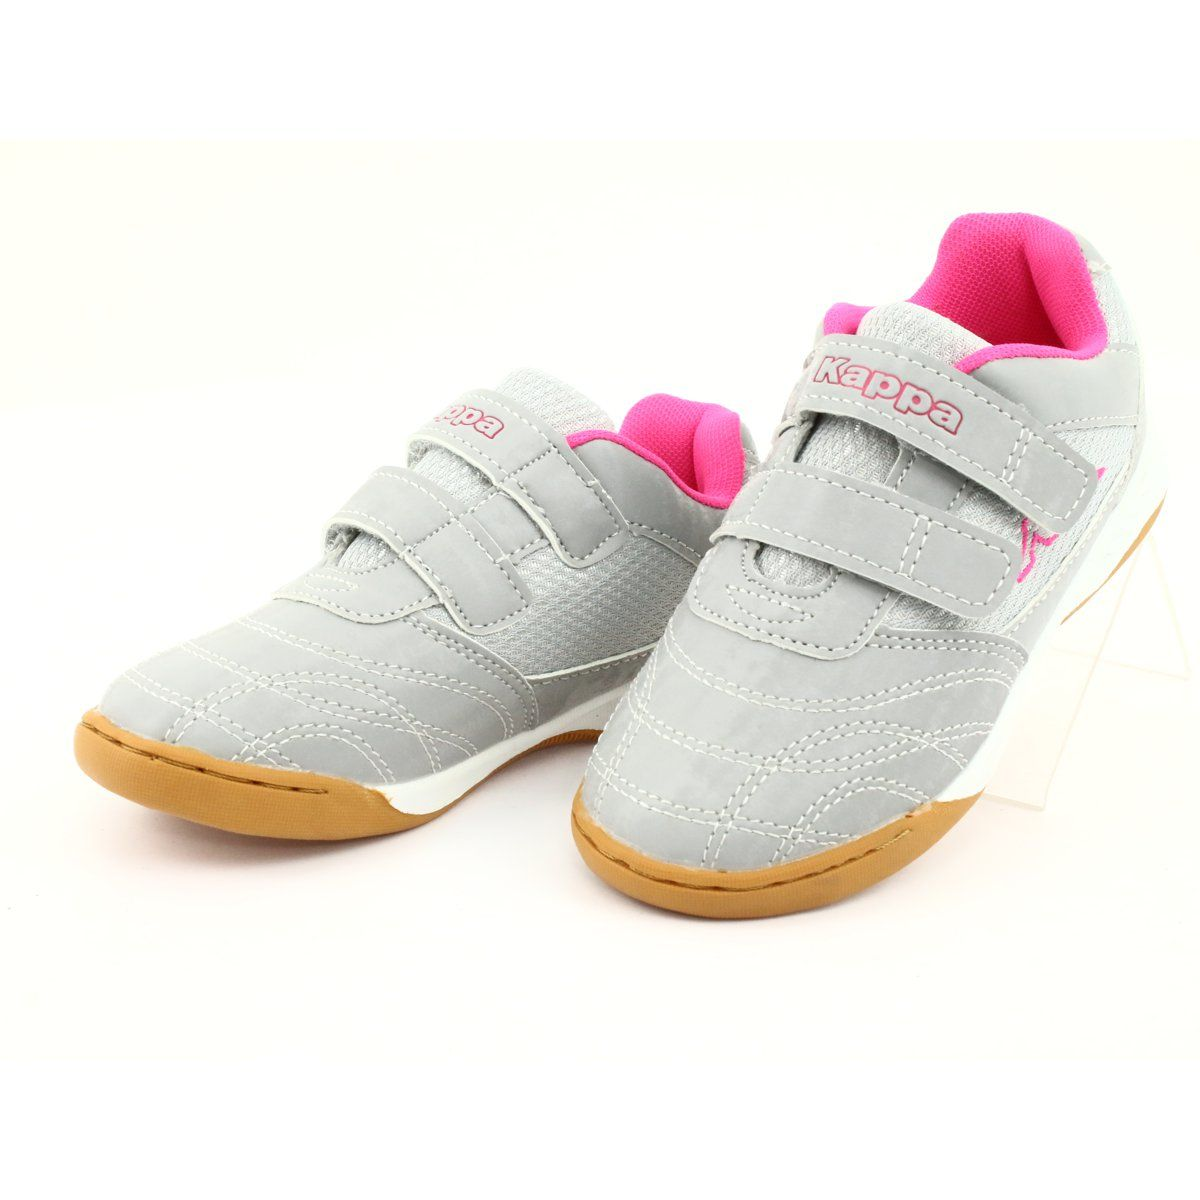 Kappa Kickoff Jr 260509k 1522 Shoes Pink Grey Kid Shoes Put On Your Shoes Shoes